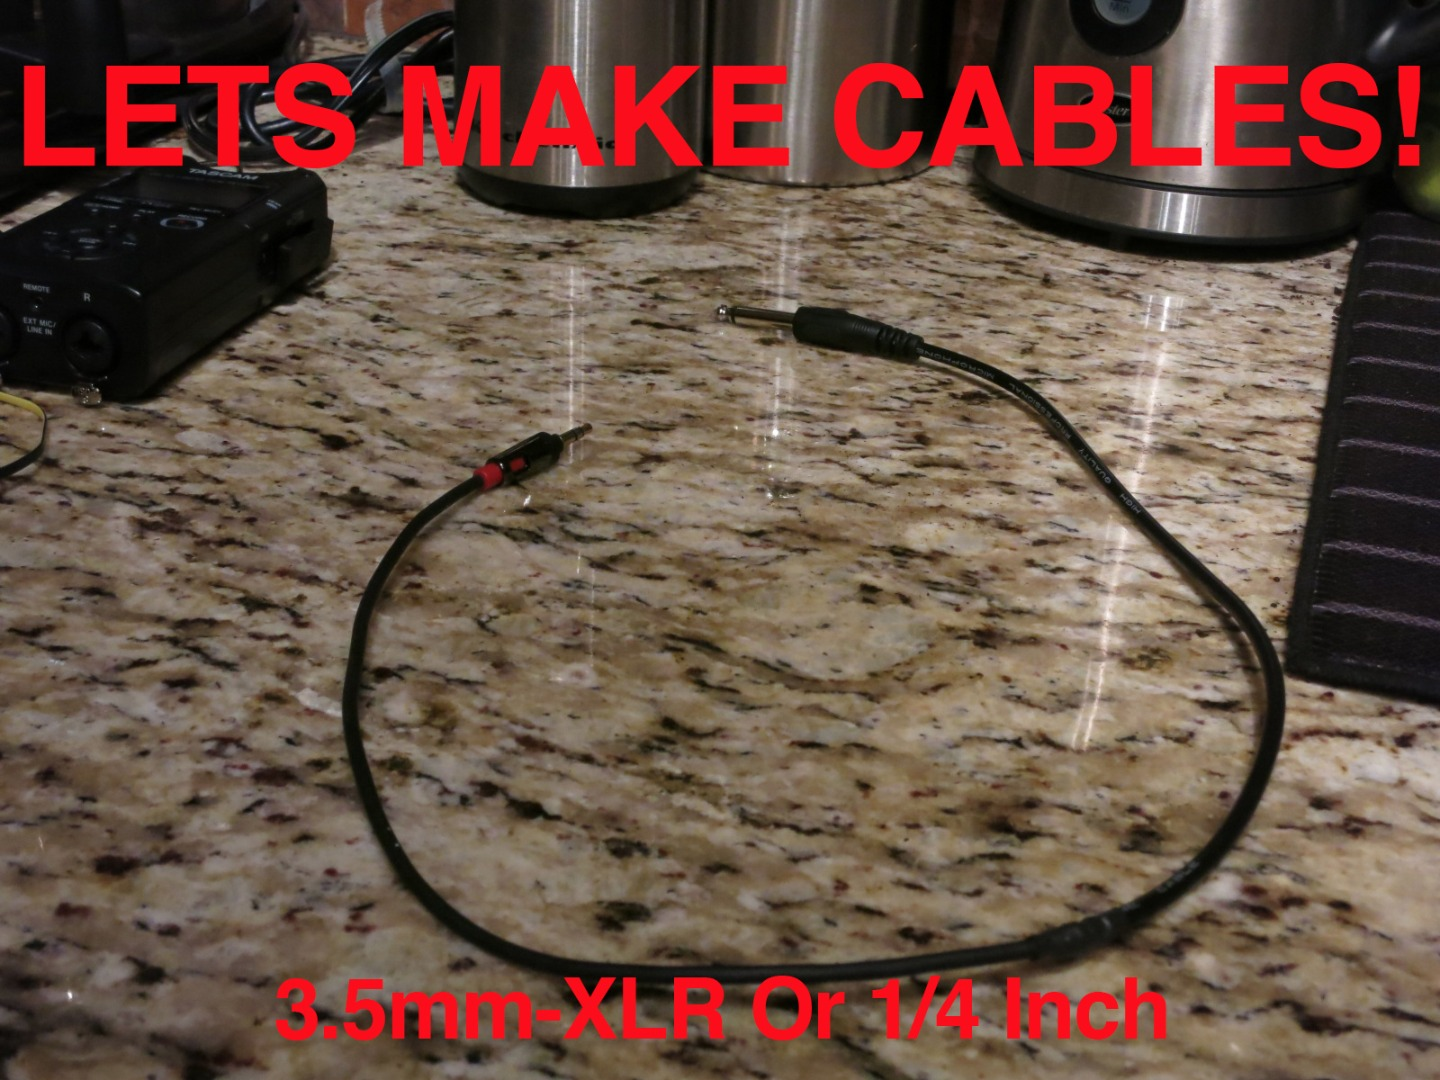 Picture of Audio Cables: 3.5mm to 1.4 Inch or XLR & 1/4 Inch or XLR to 3.5mm